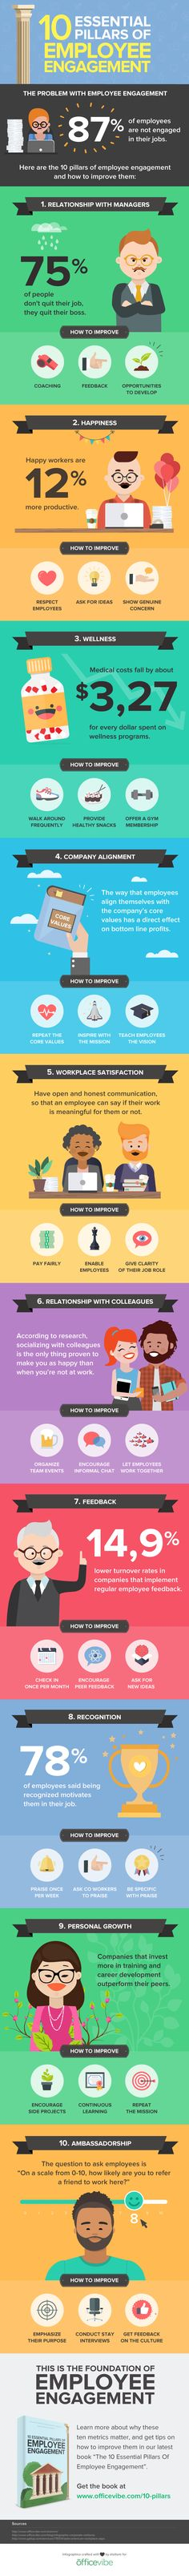 10 Essential Pillars Of Employee Engagement (Infographic)